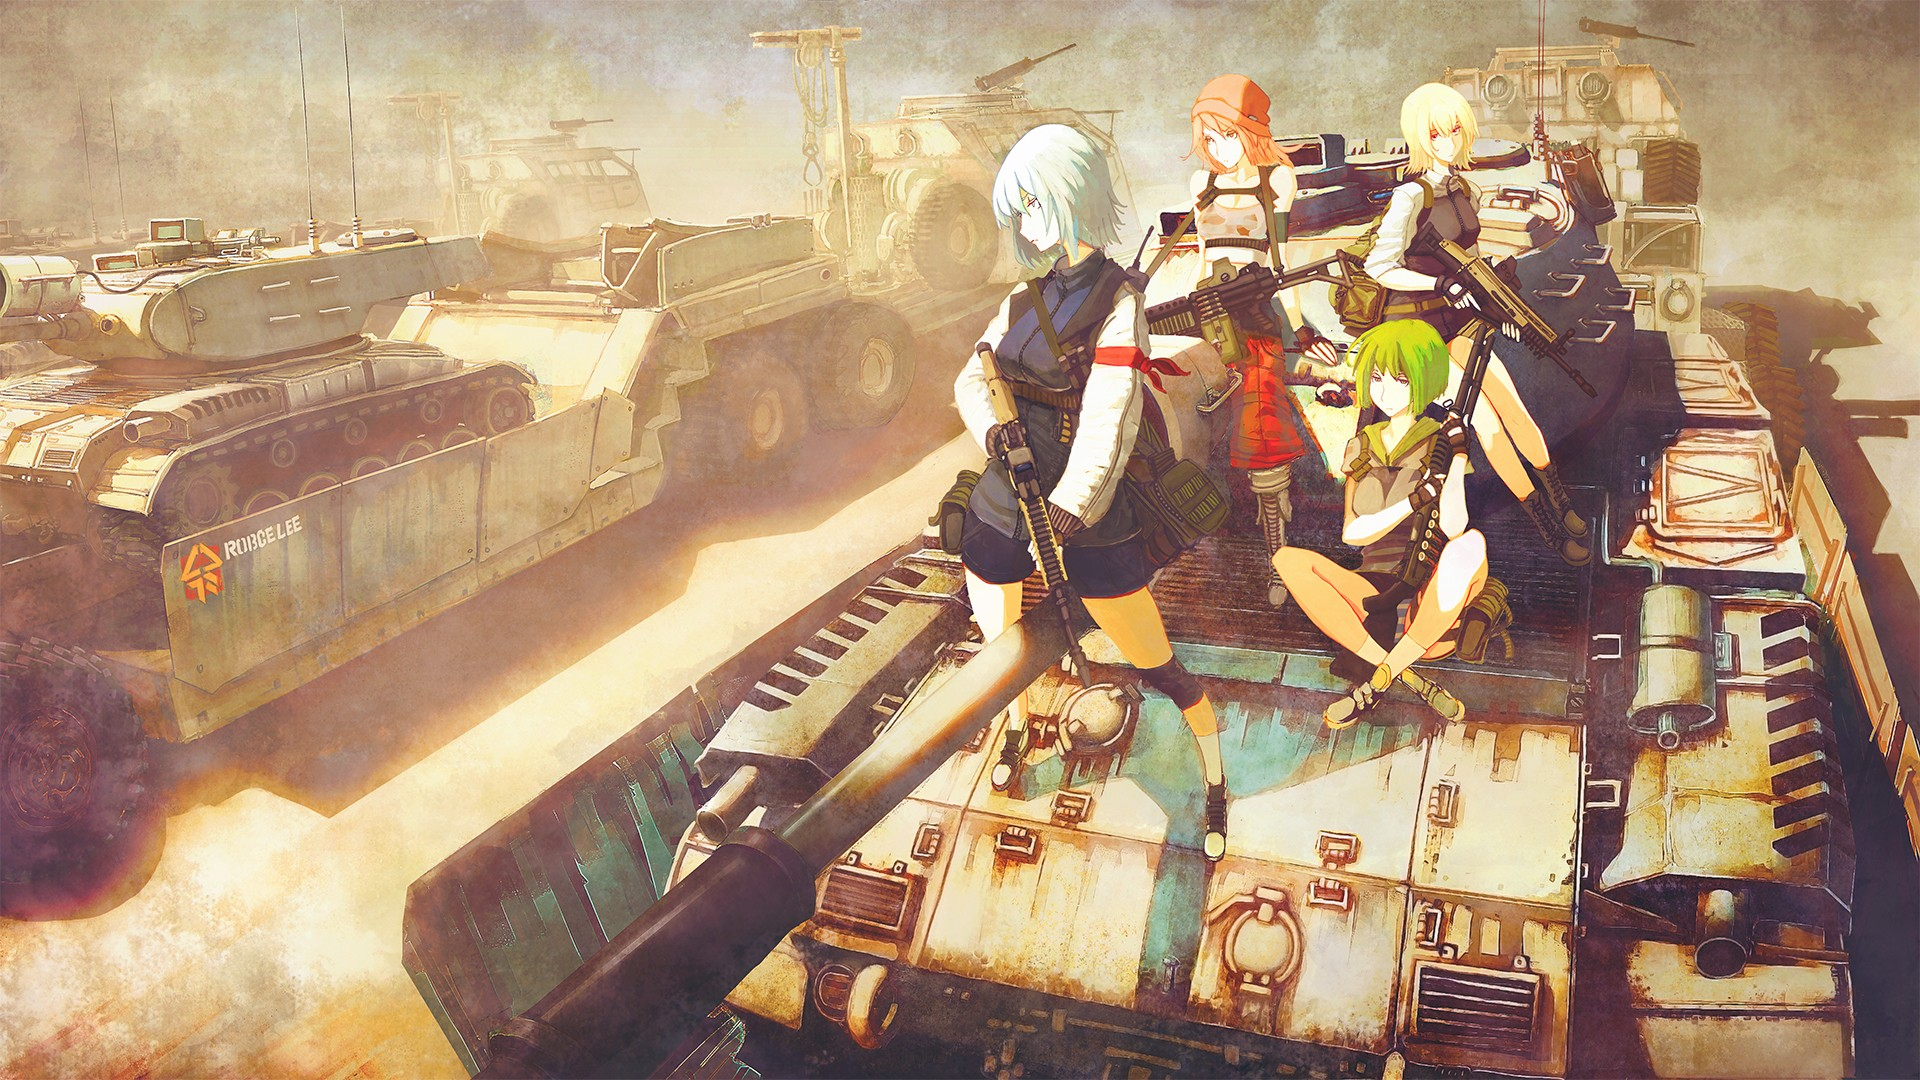 Cute Anime Girl Gun Wallpaper Original Characters Anime Anime Girls Military Tank